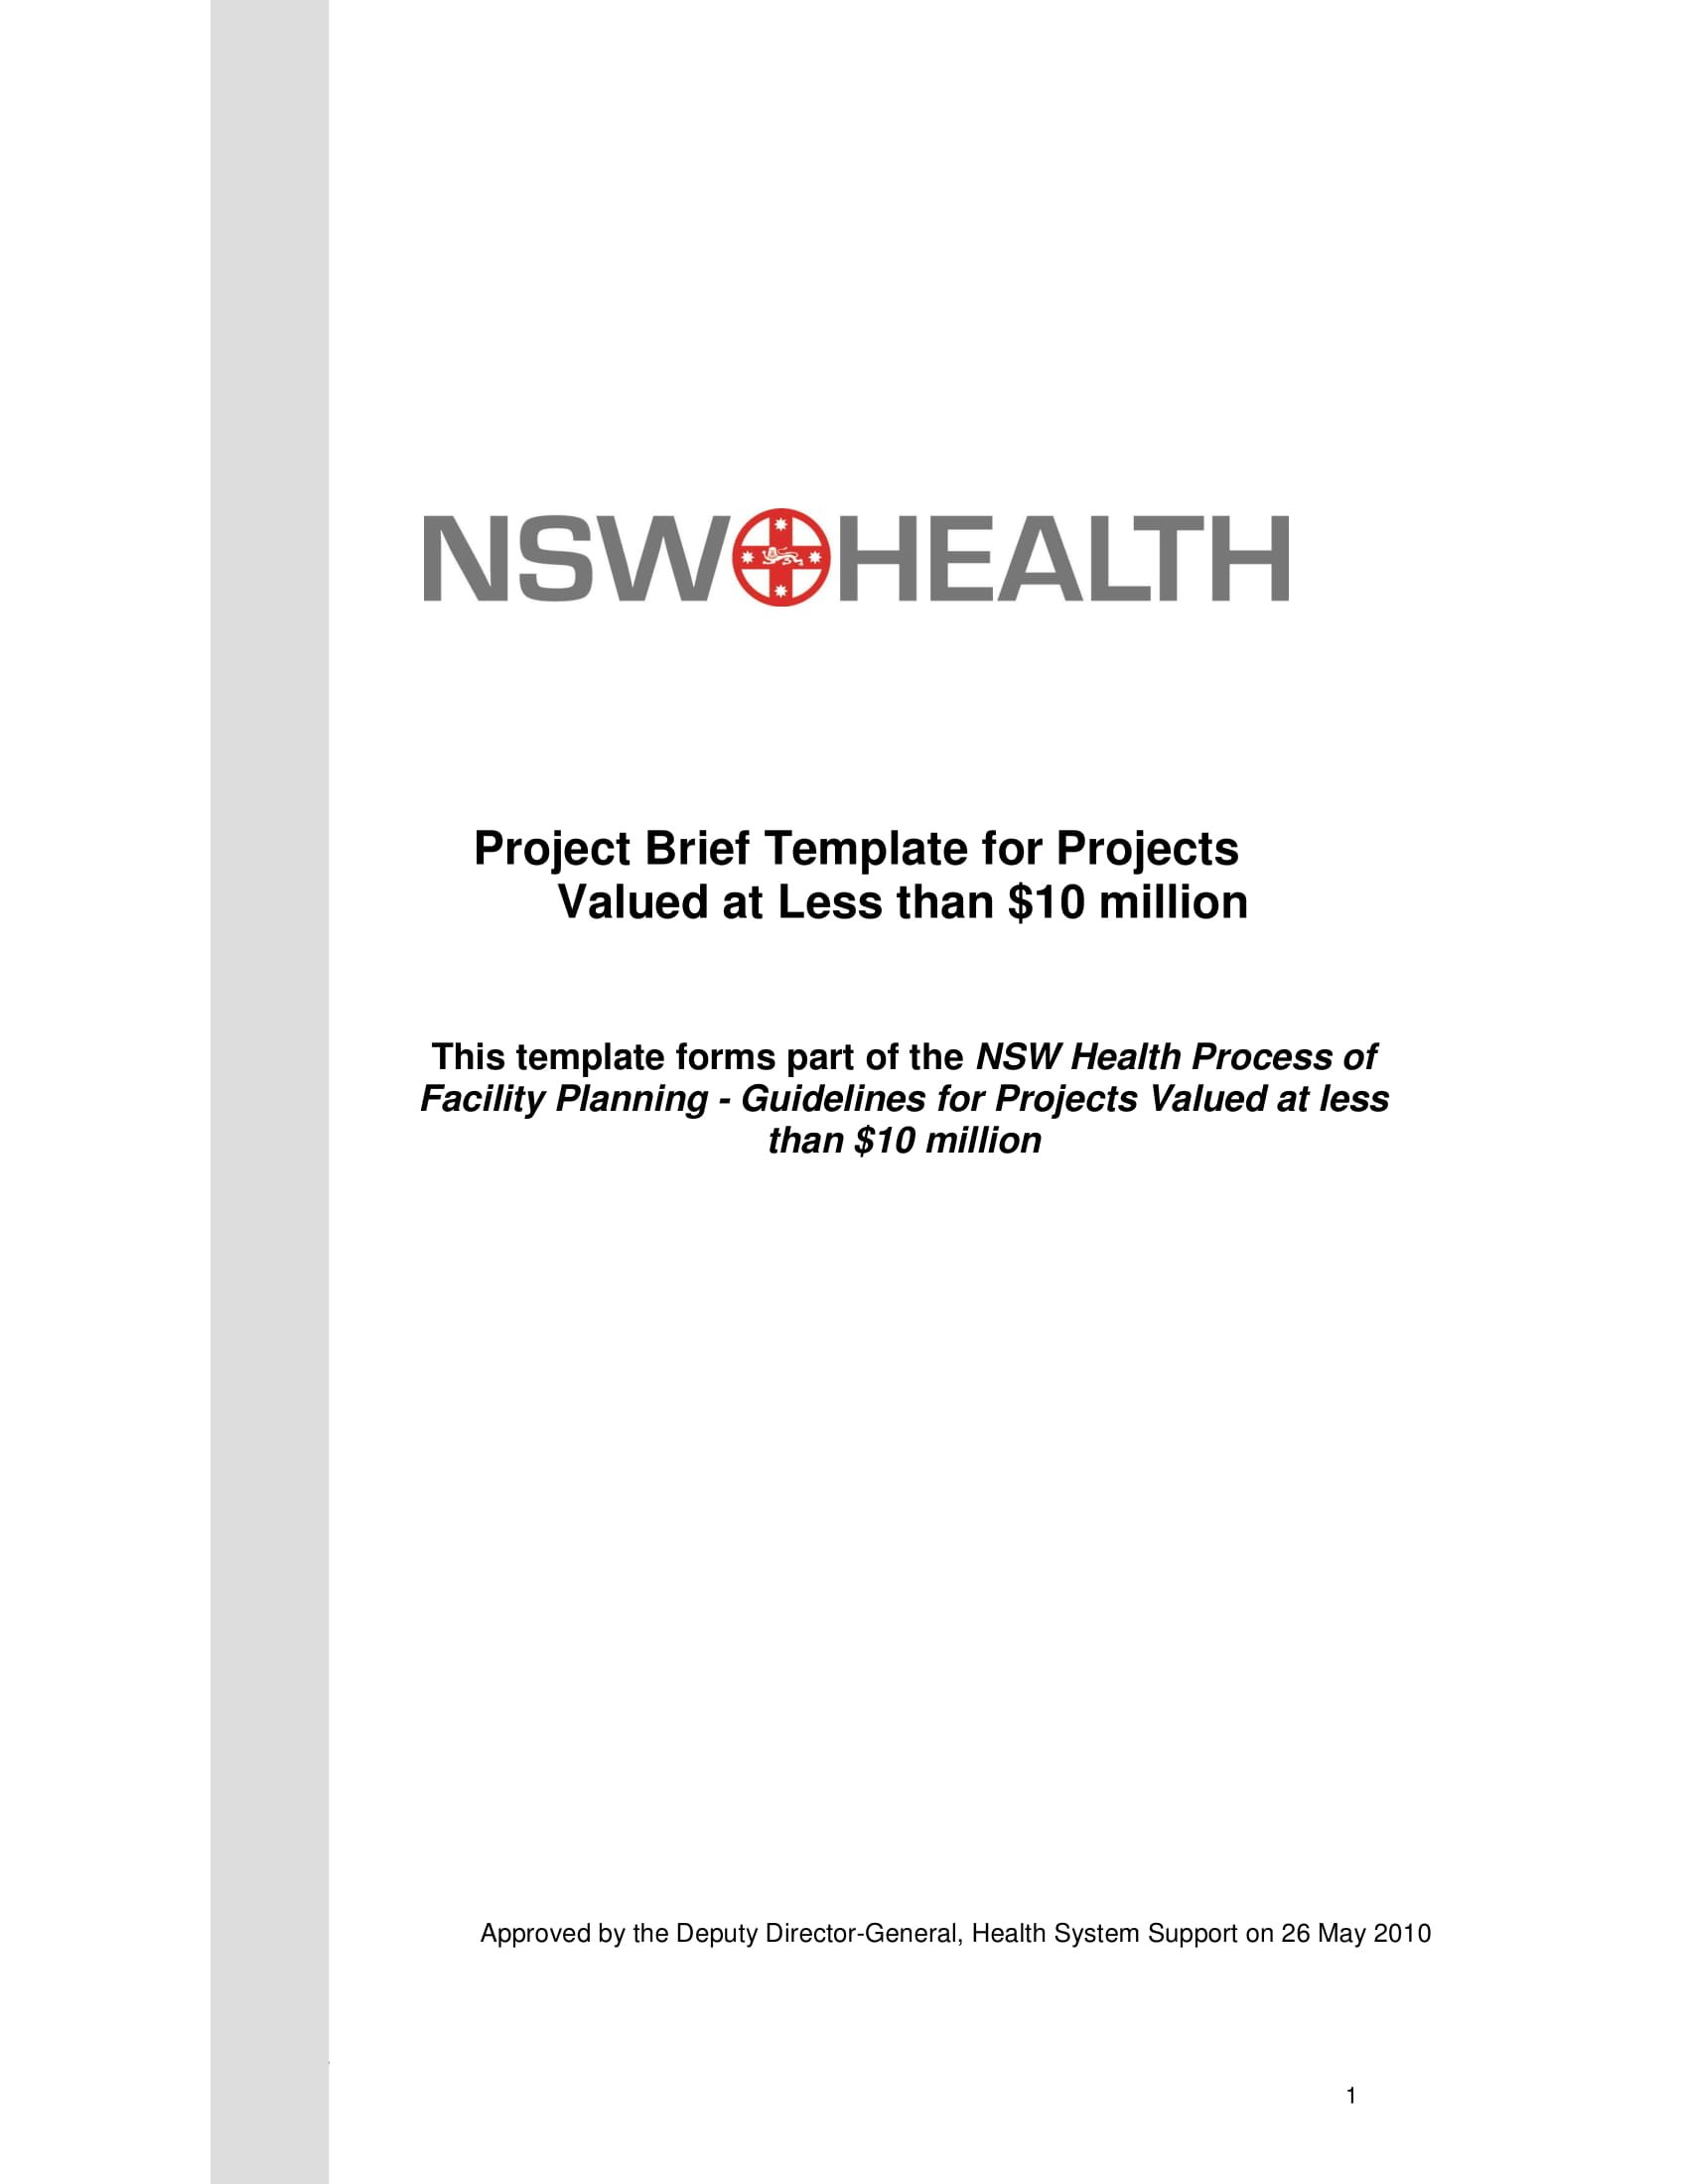 14 project brief examples pdf project brief for projects valued at less than 10 million example maxwellsz